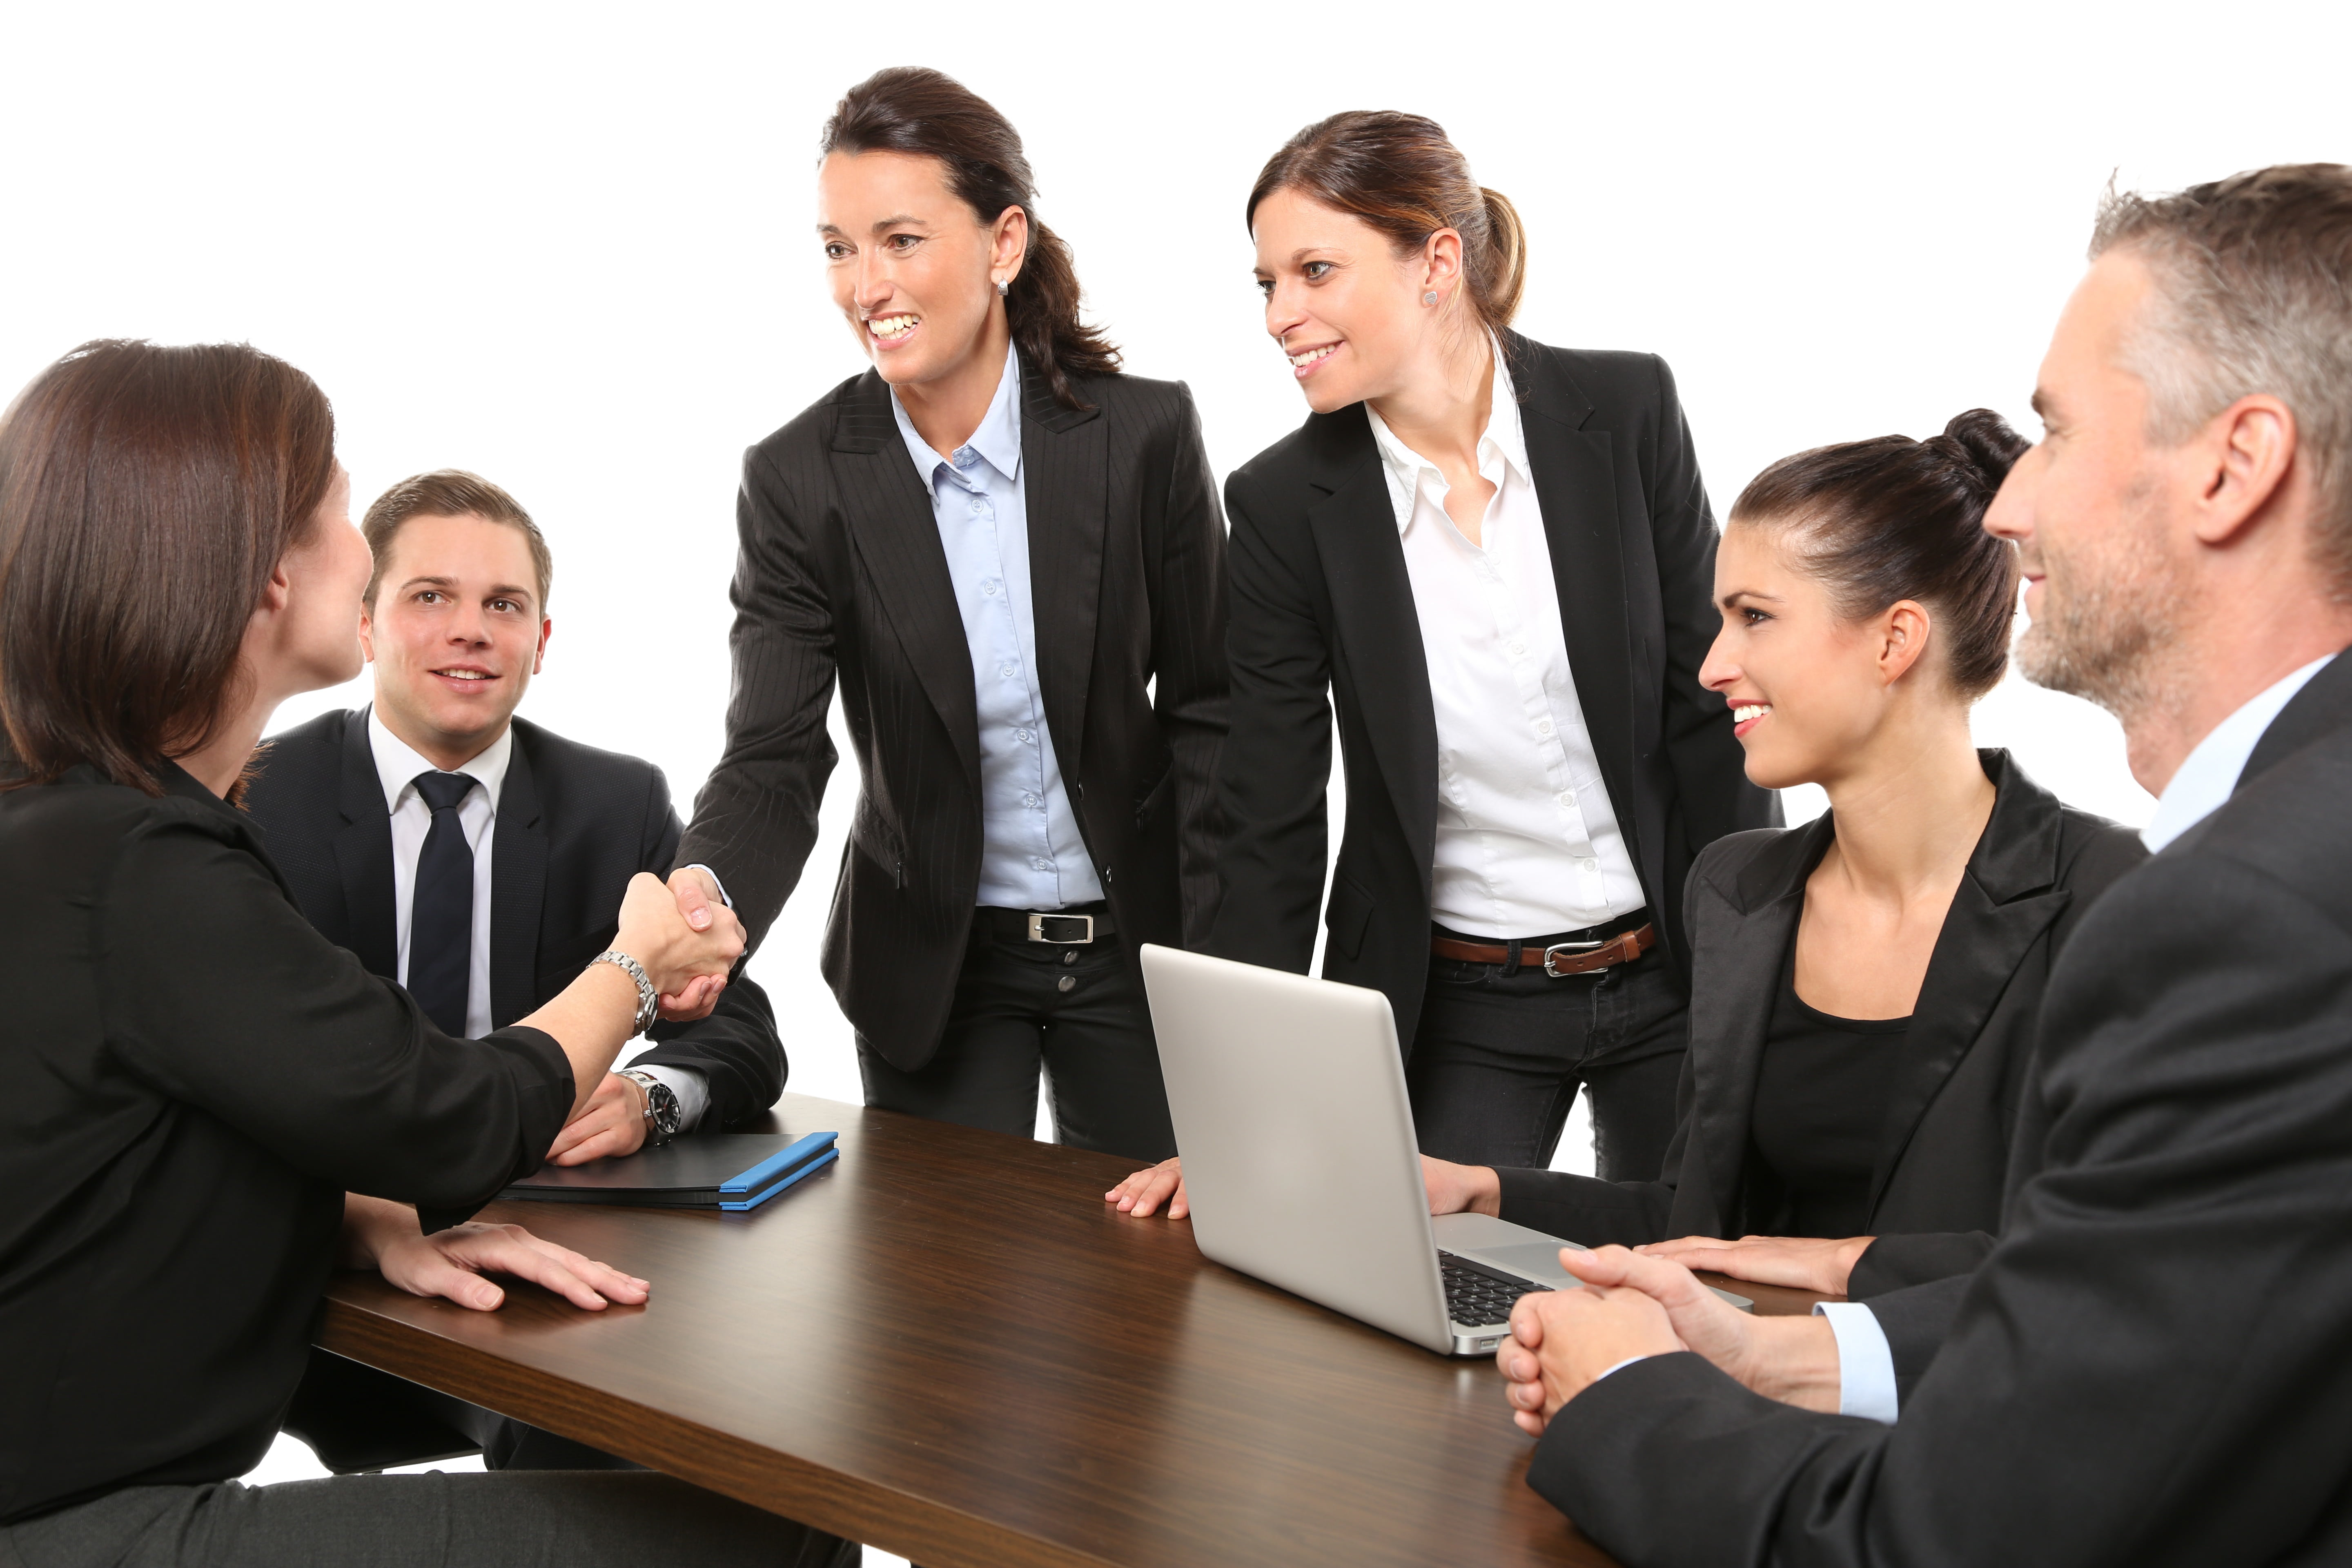 The Benefits of Workplace Mediation: An interview with David Weaver